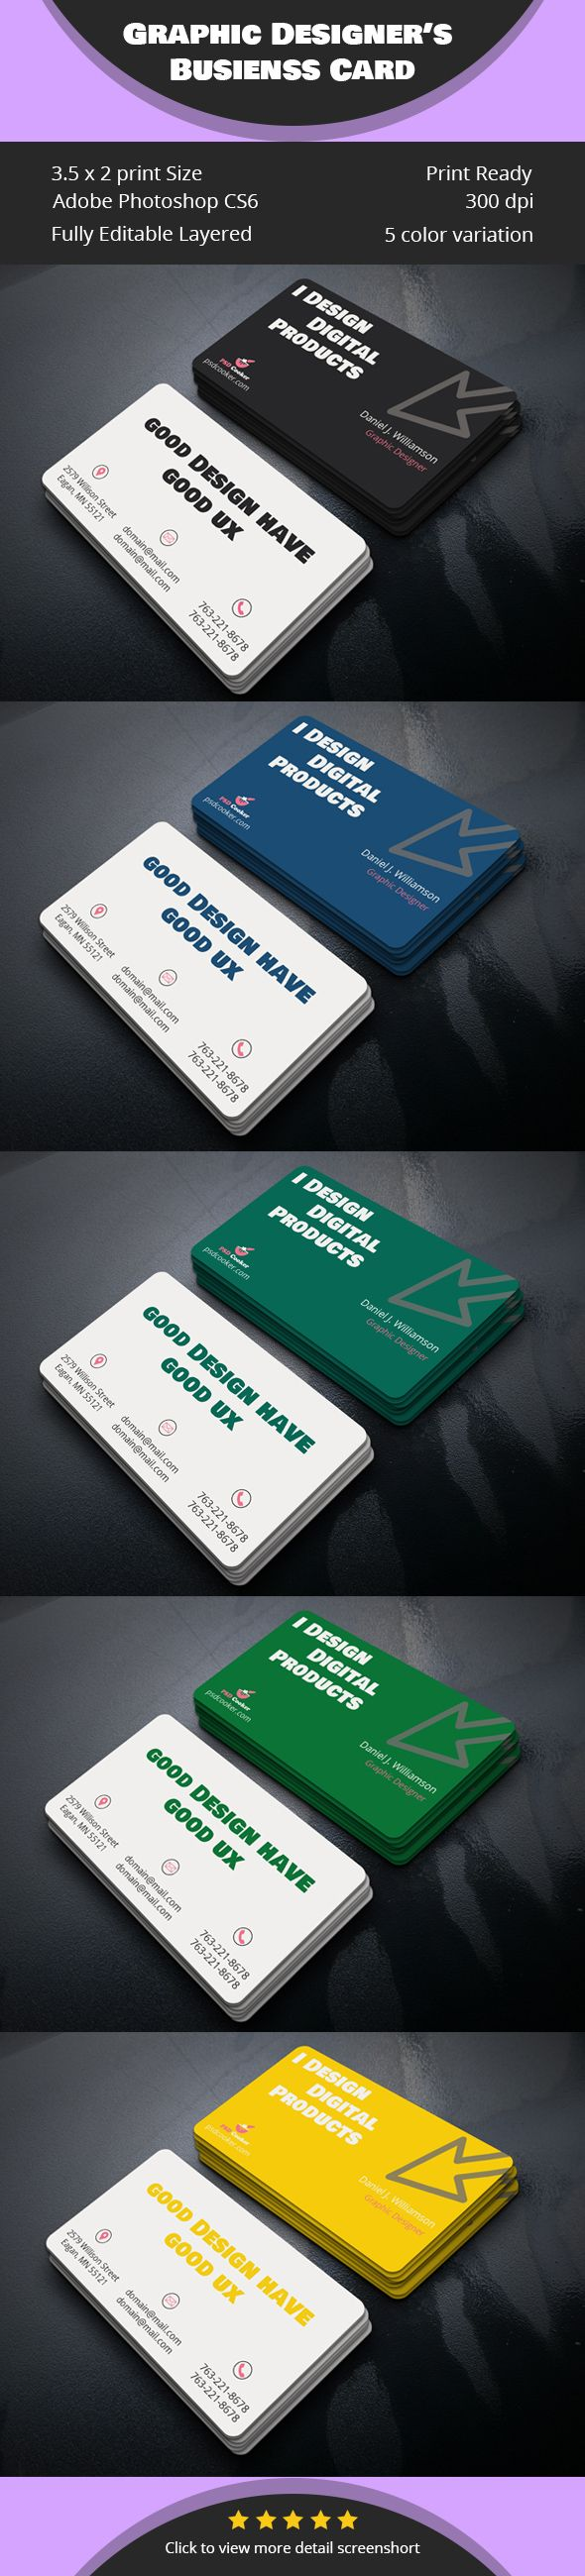 15 best Business card Kingdom images on Pinterest | Business cards ...